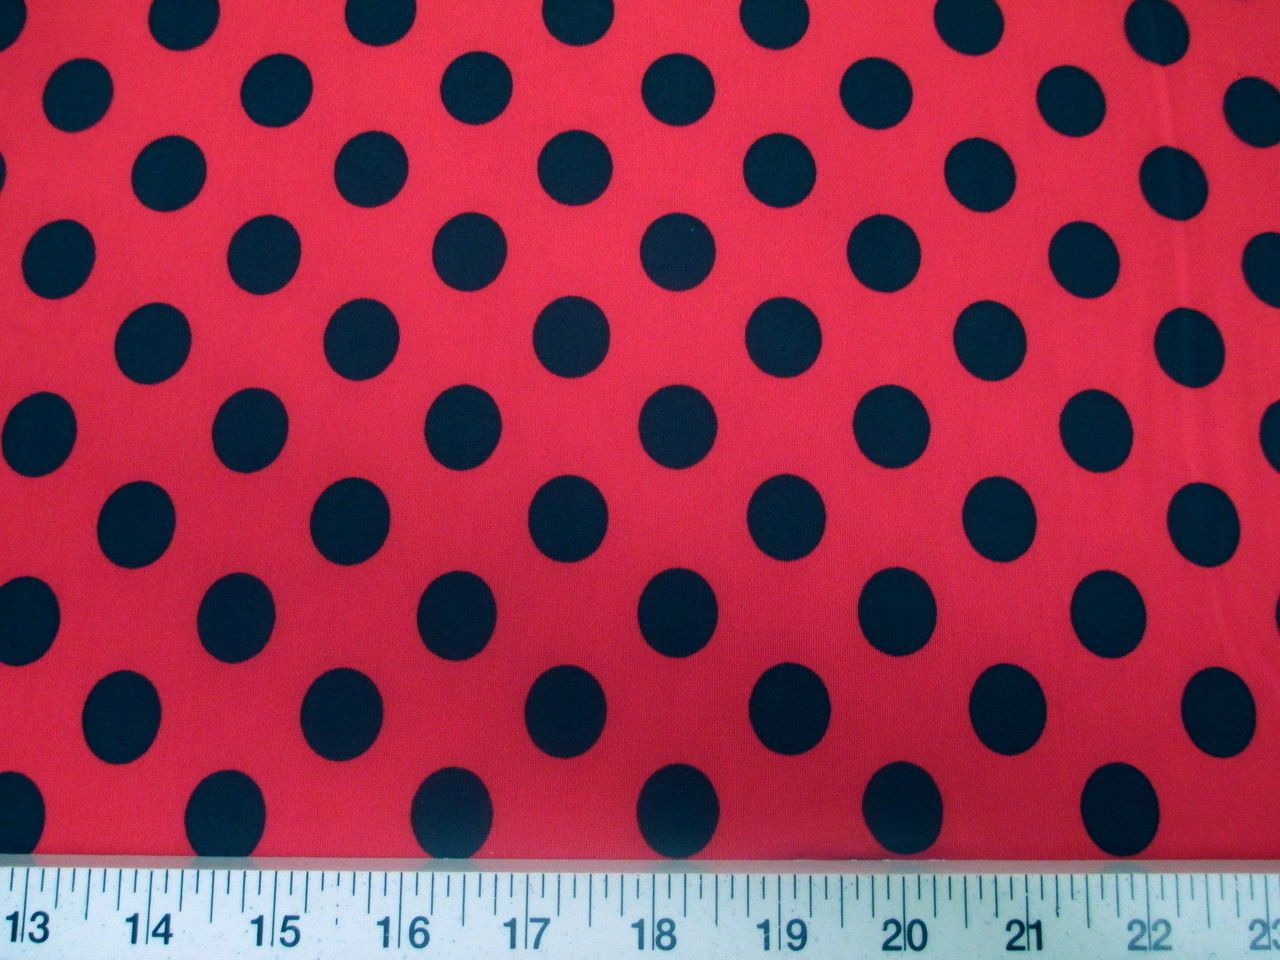 c2aa6767272 Printed Lycra Spandex Stretch Red with Black Polka Dots - Discount Designer  Fabric - Paylessfabrics.com